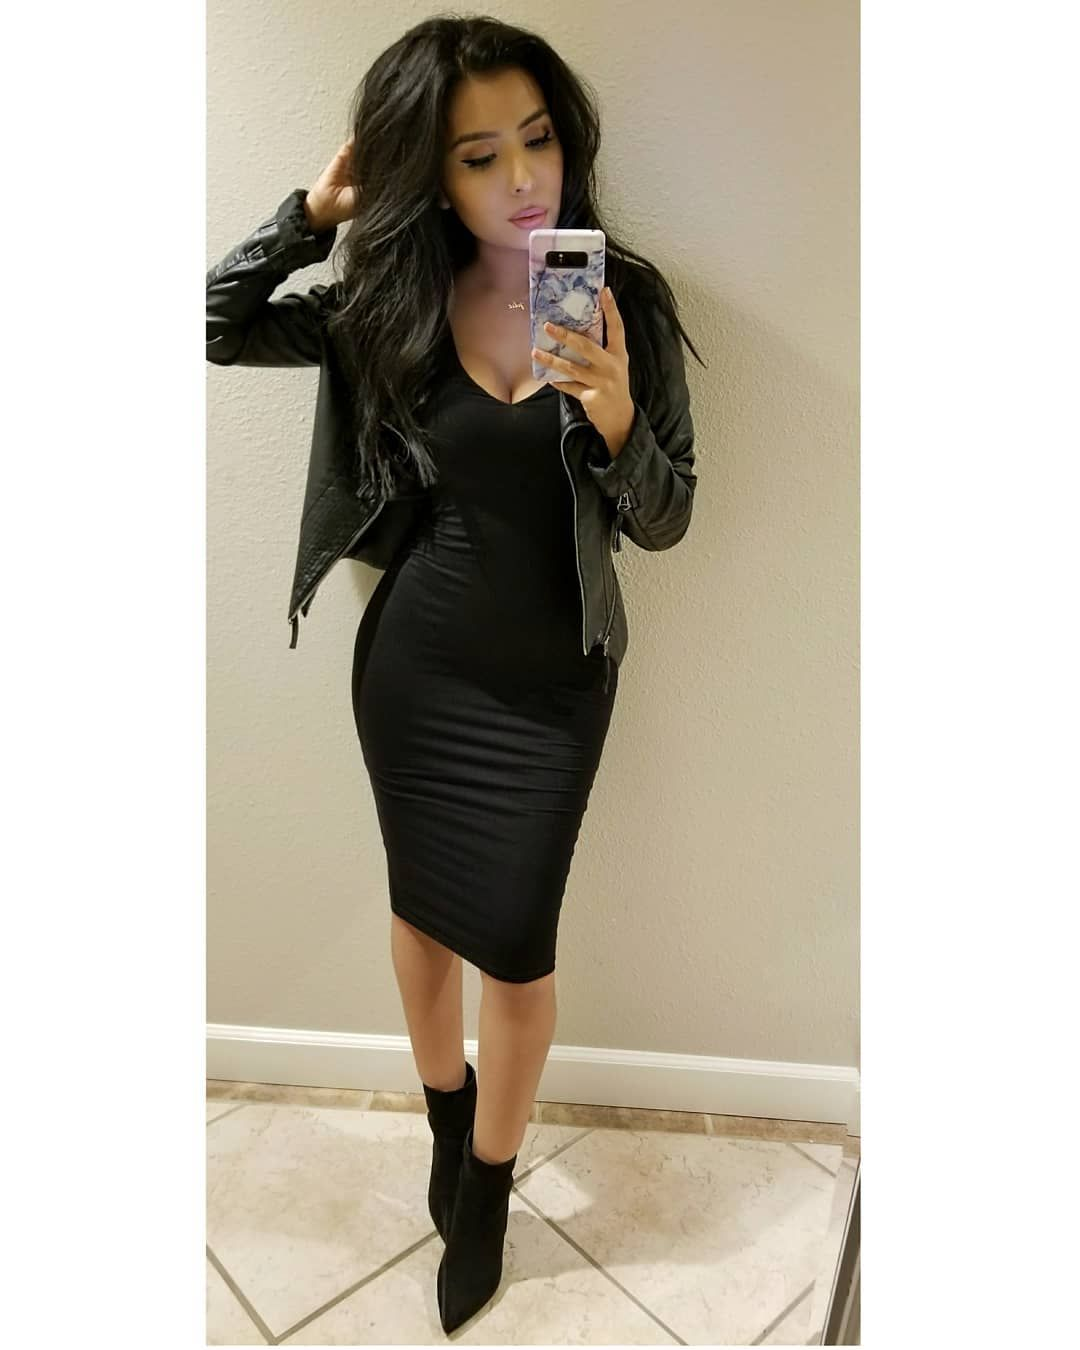 11 7 Mil Me Gusta 99 Comentarios Monica Gabriela Itsmsmonica En Instagram This Simple Yet Ver Dresses Night Outfit Fashion Outfits Winter Dress Outfits [ 1350 x 1080 Pixel ]